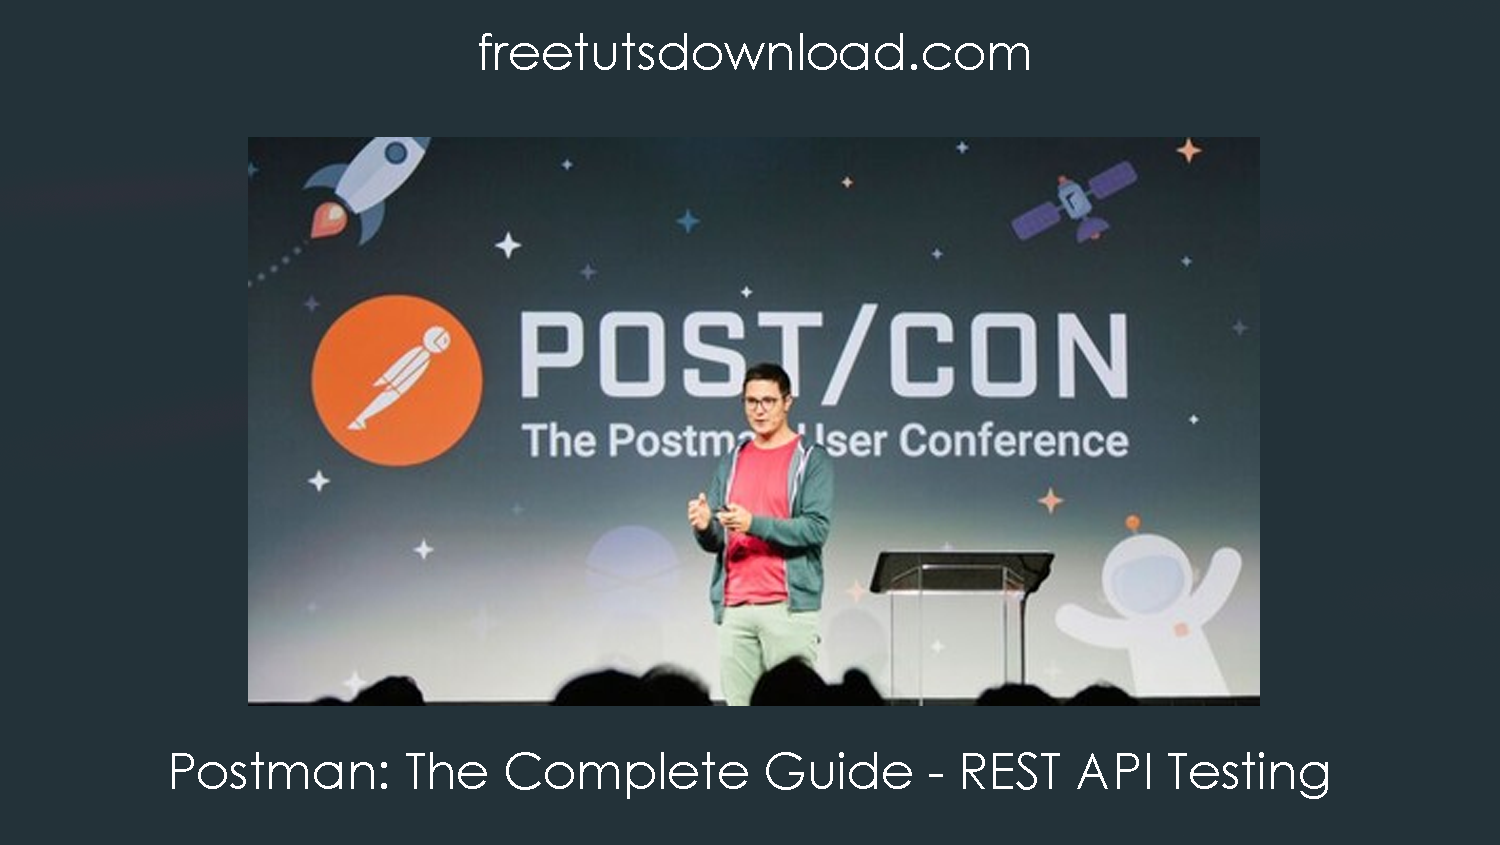 Postman: The Complete Guide - REST API Testing Free Download